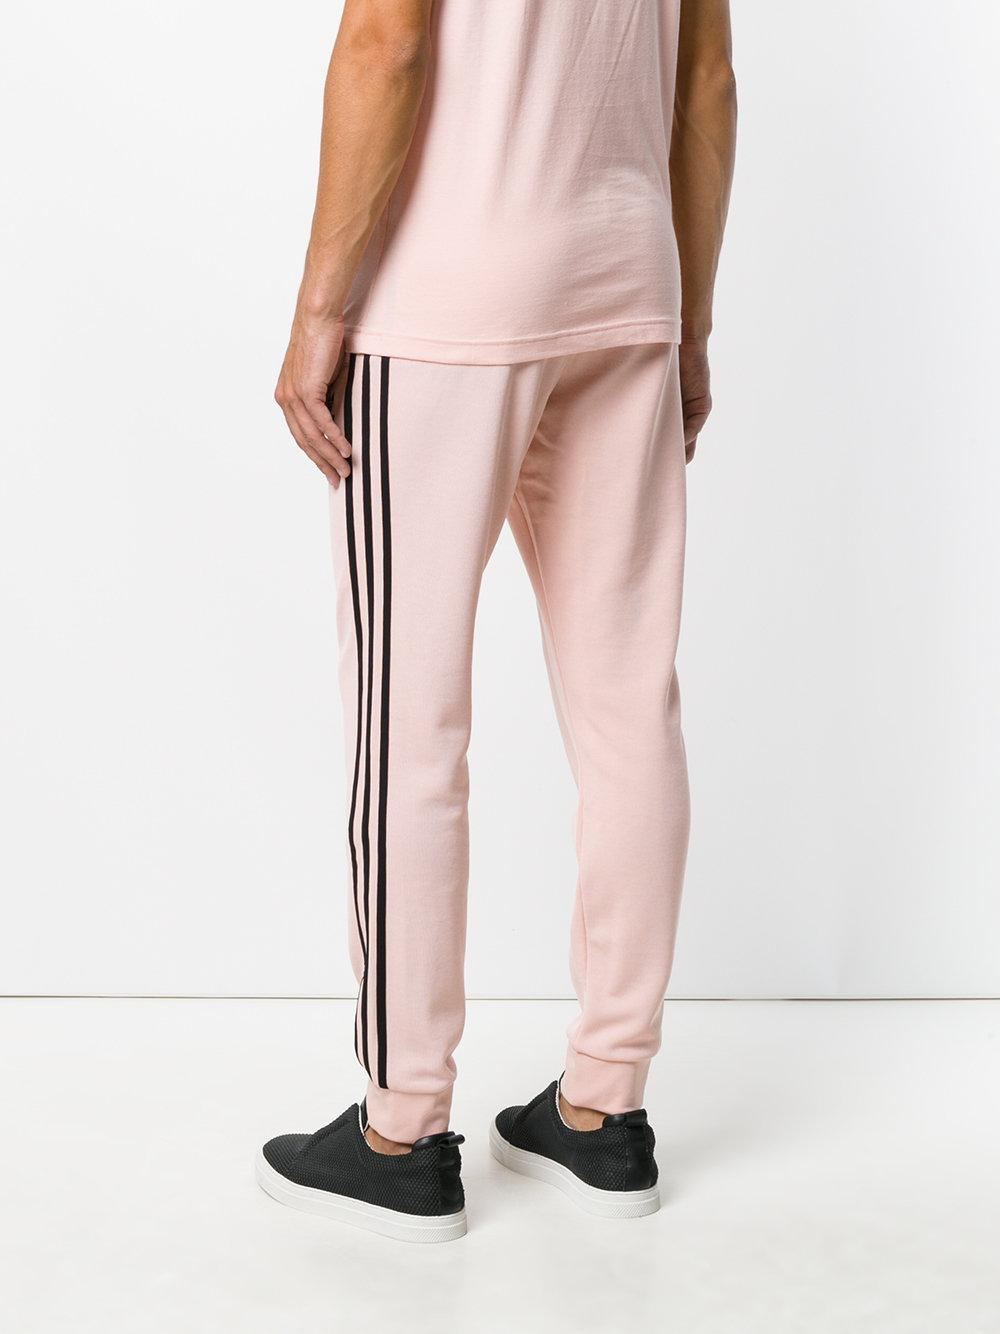 adidas Originals Cotton Sst Cuffed Tack Pants in Pink/Purple (Pink) for Men